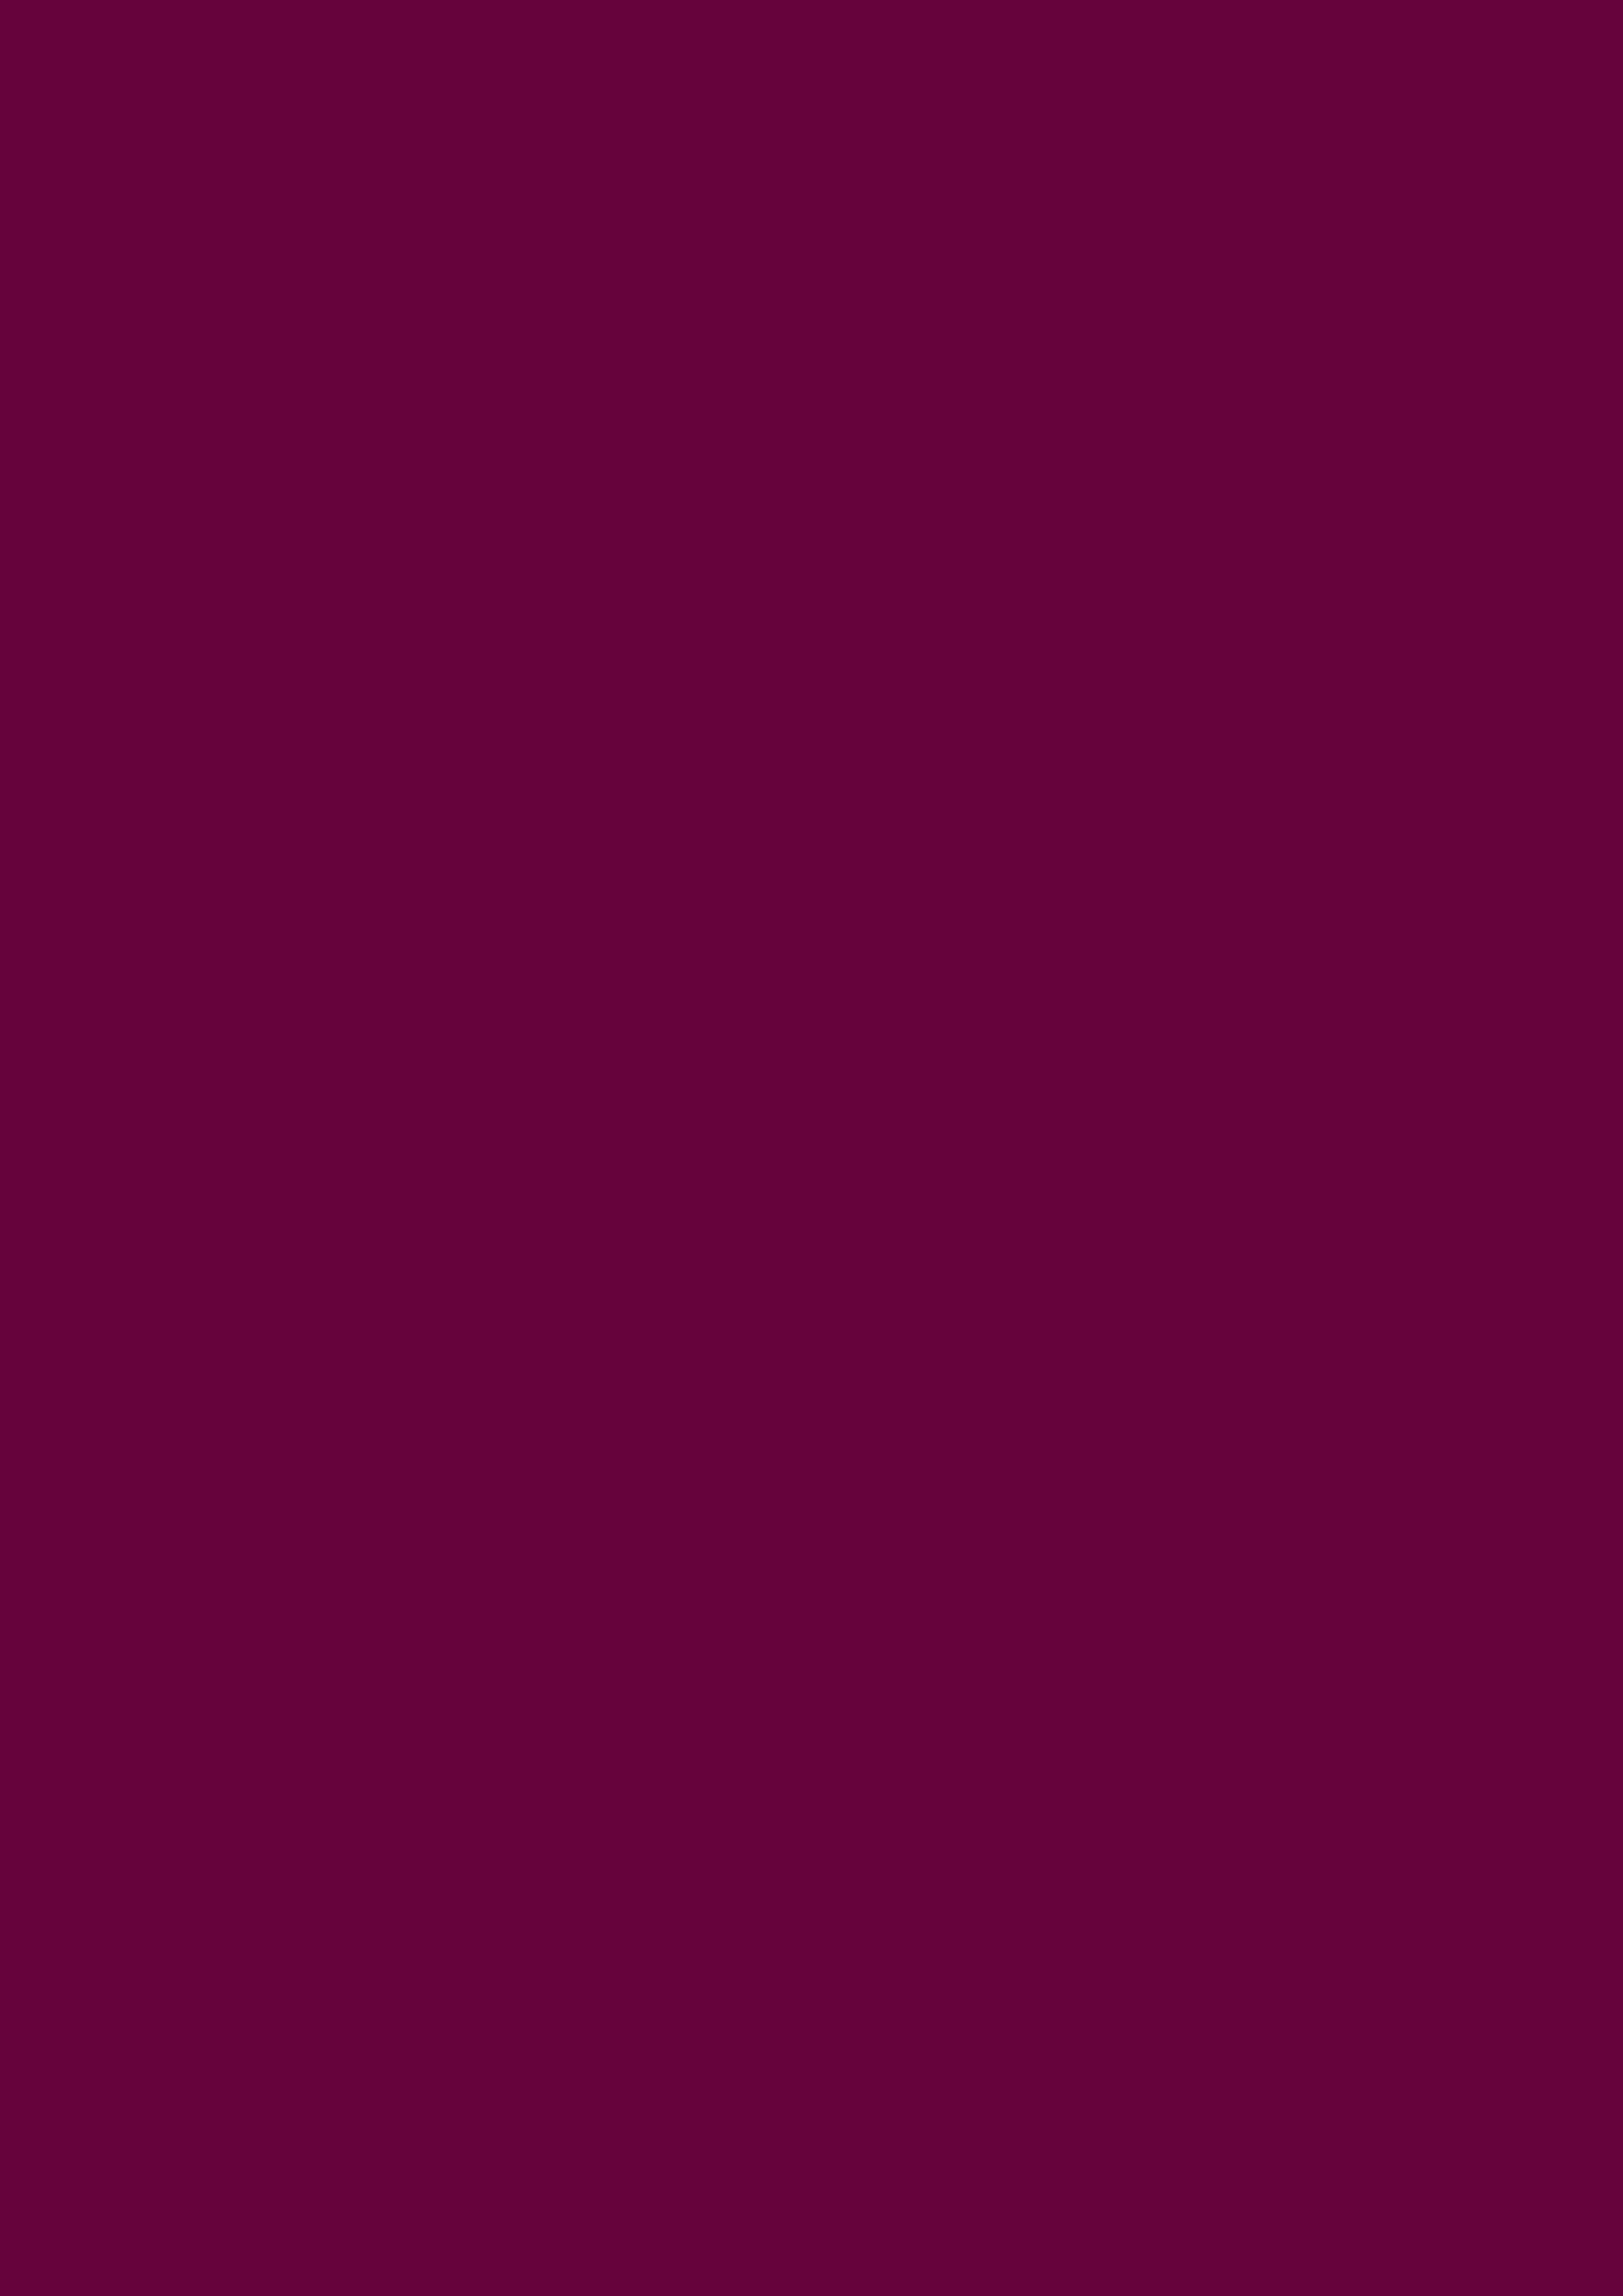 2480x3508 Tyrian Purple Solid Color Background